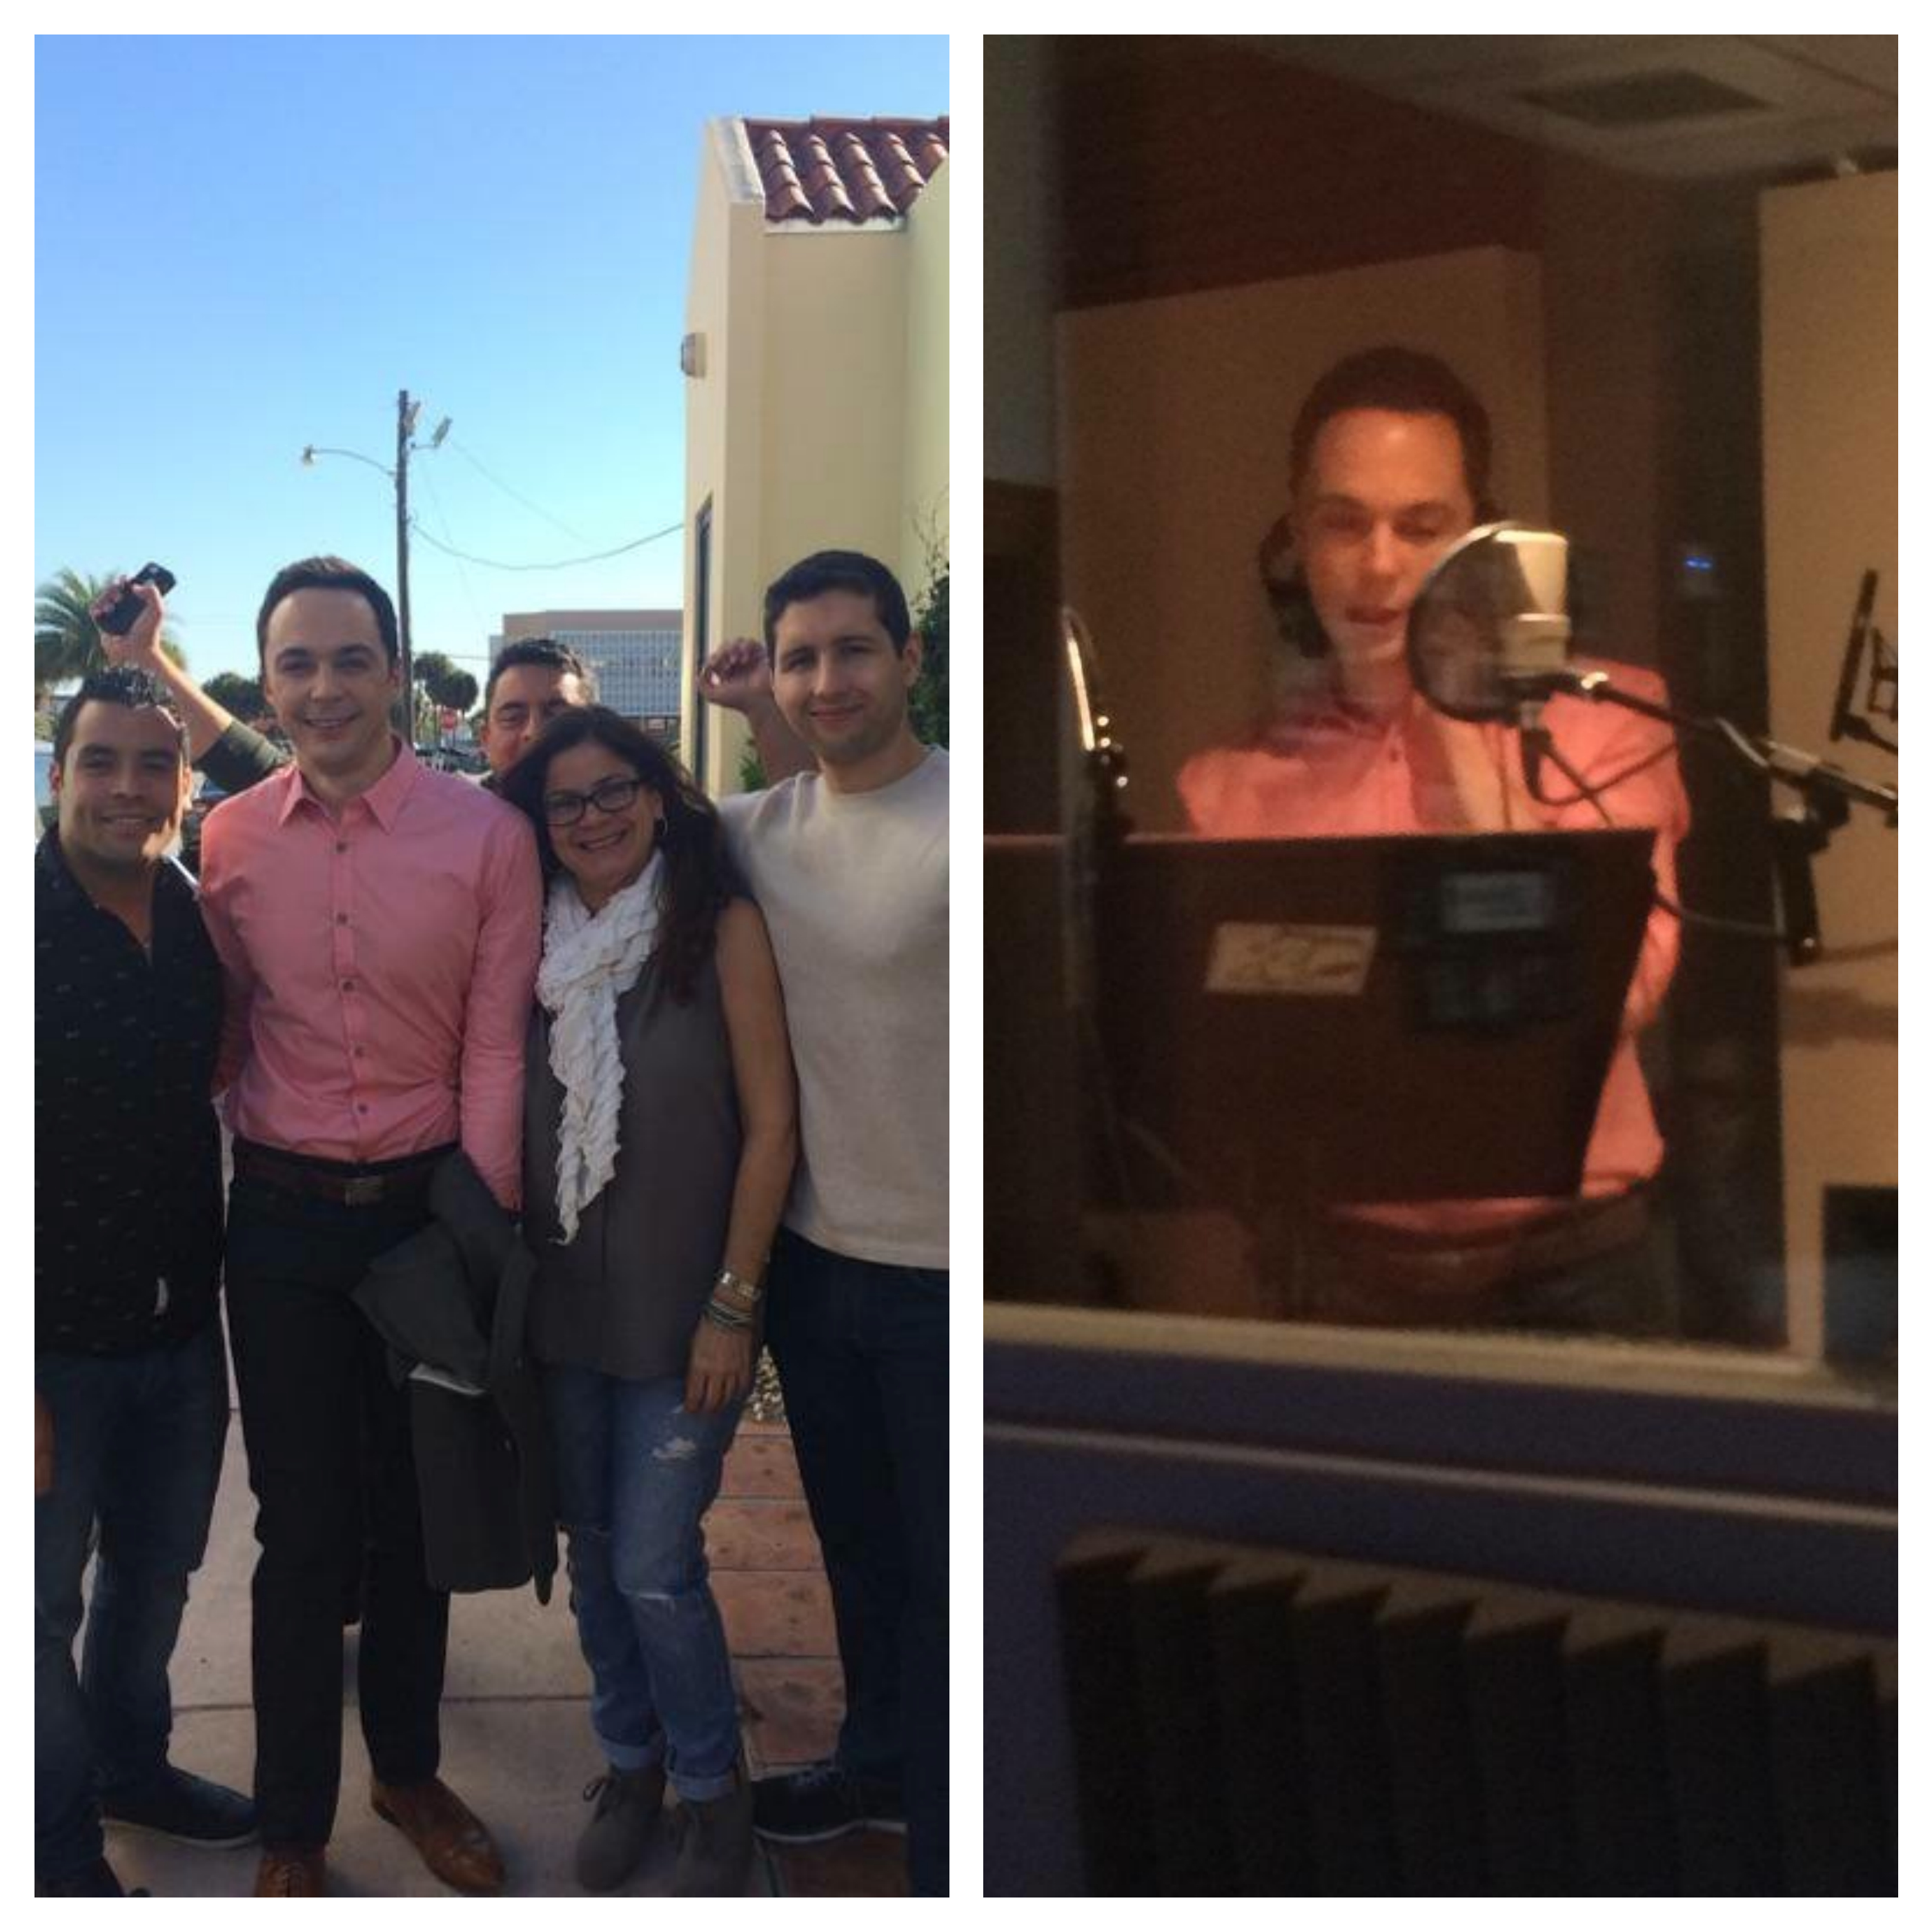 Jim Parsons recording commercial spots for his movie HOME